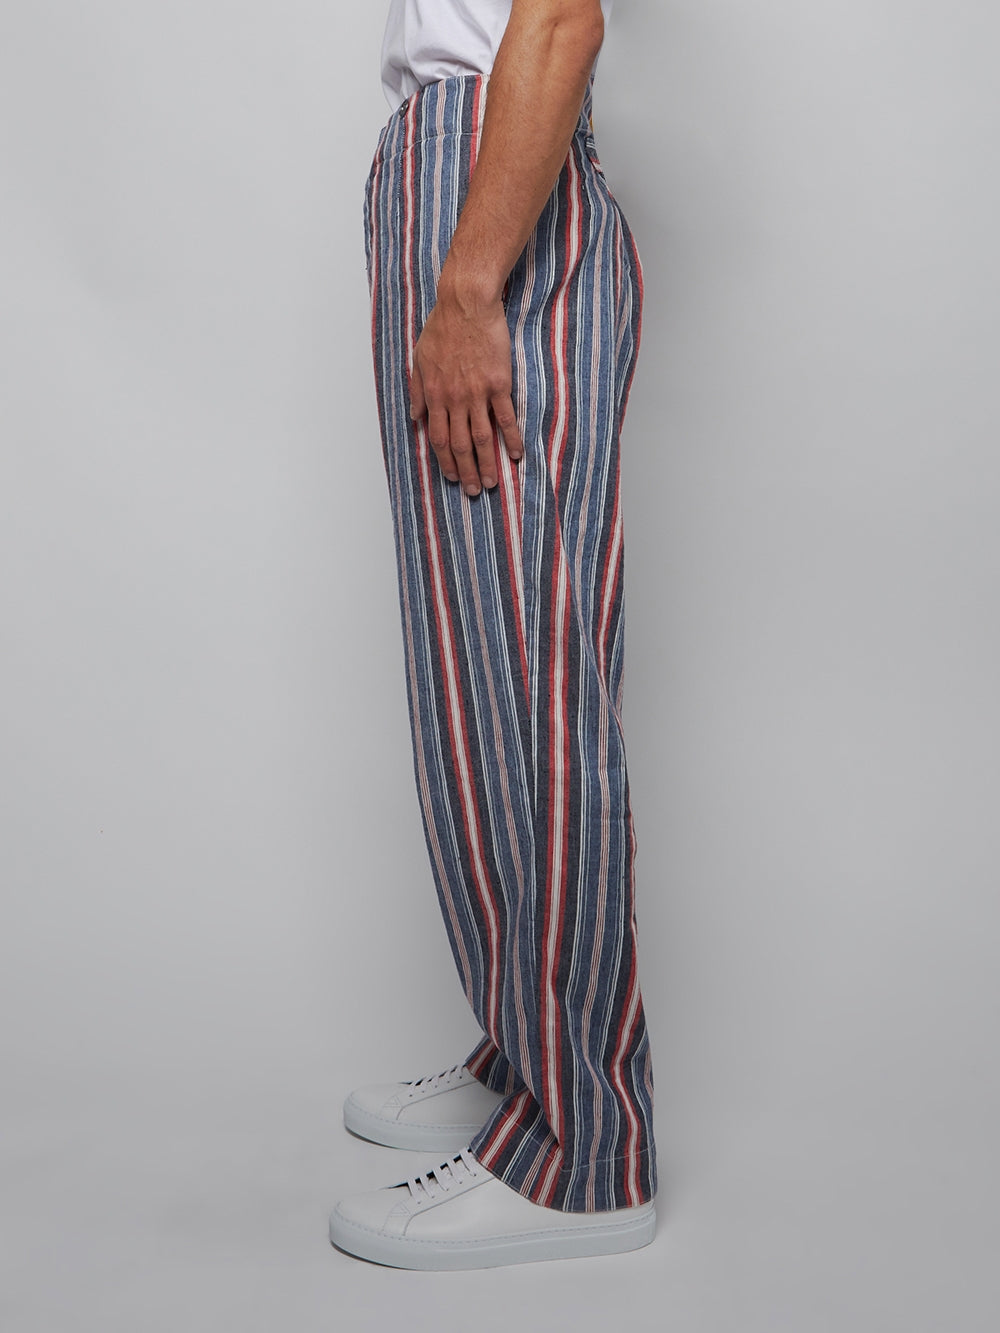 Multi Striped Pants